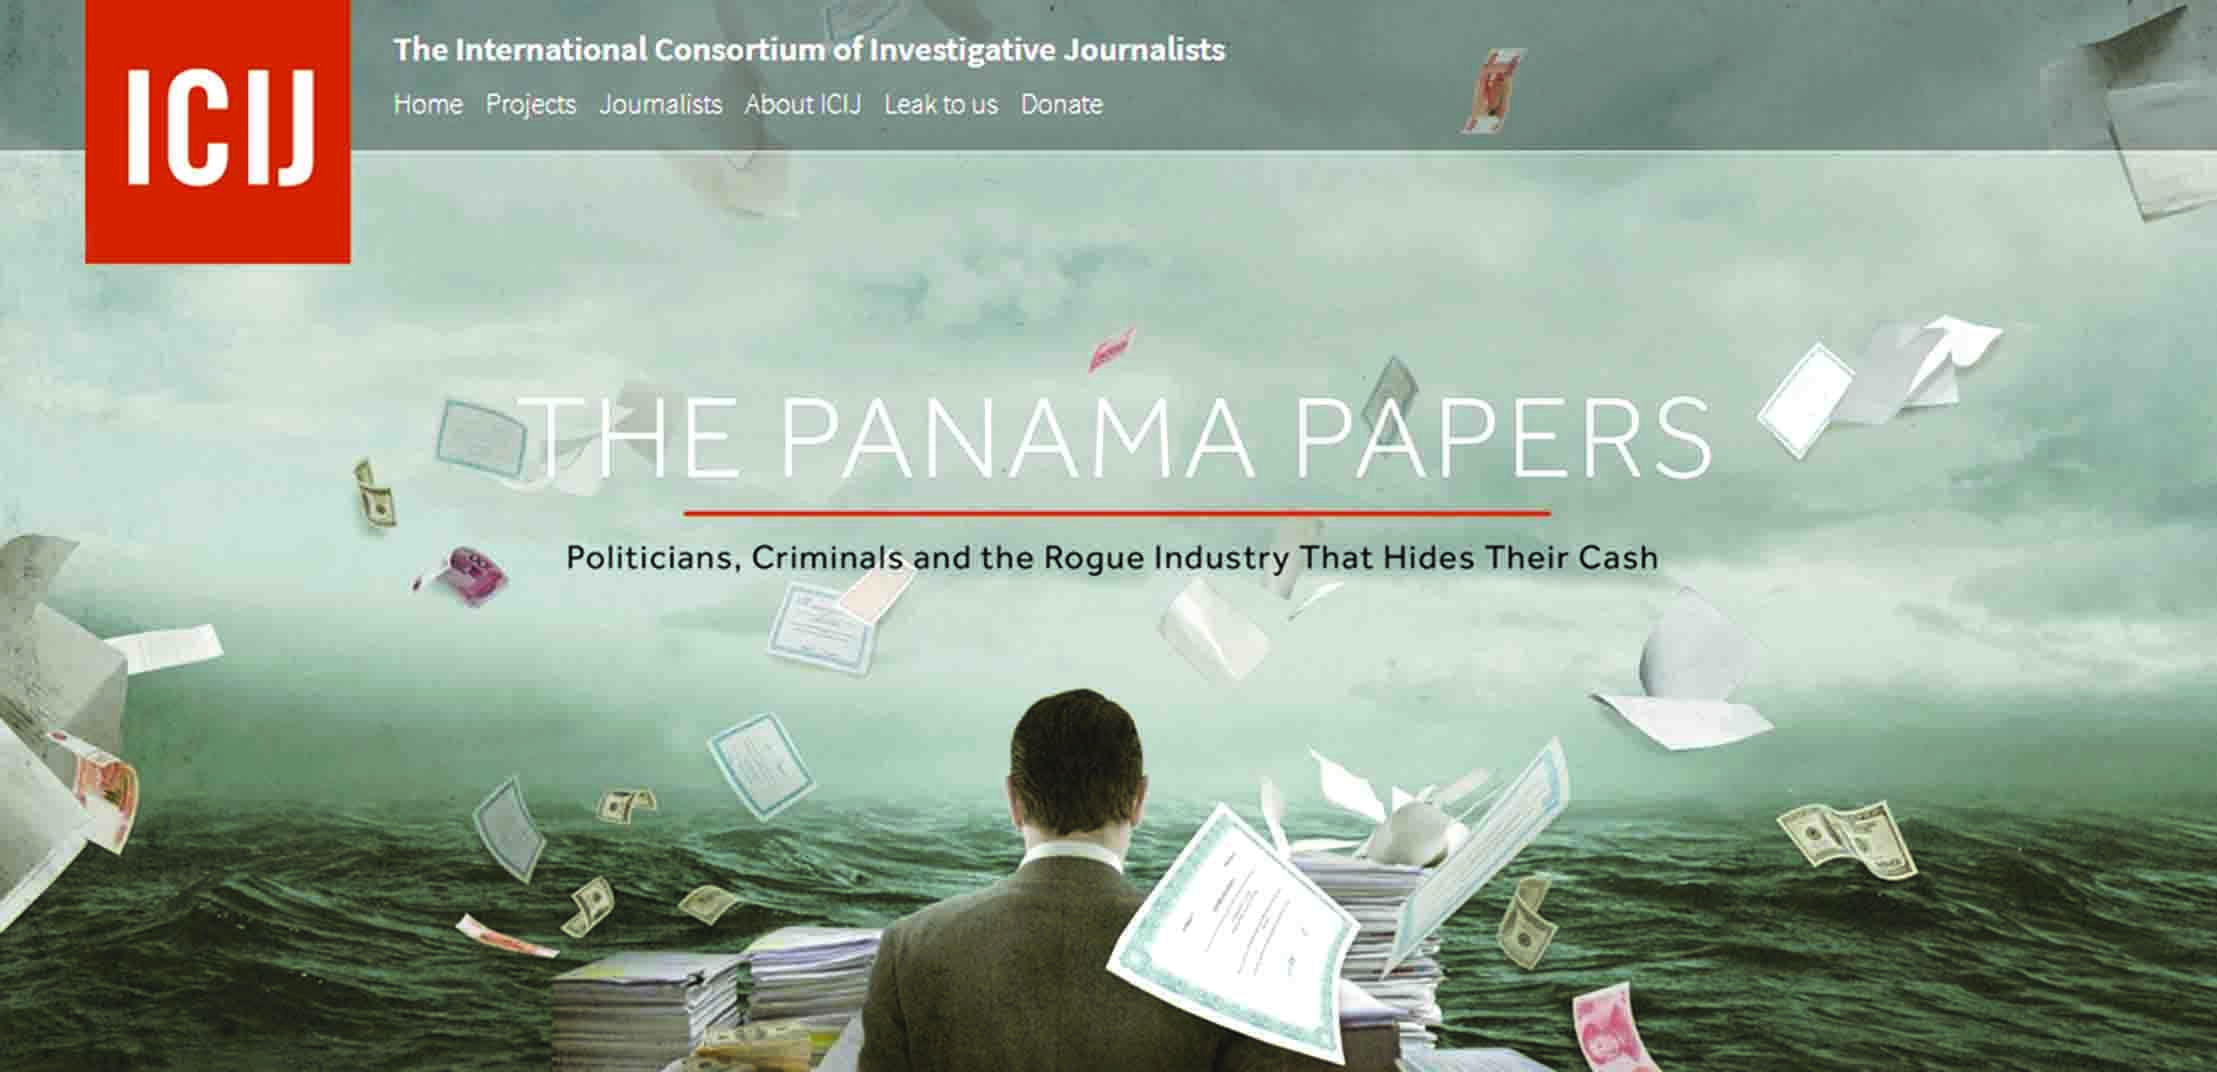 A screenshot of the official website of the International Consortium of Investigative Journalists (ICIJ) which took the political elite by surprise with what subsequently came to be known as The Panama Papers.